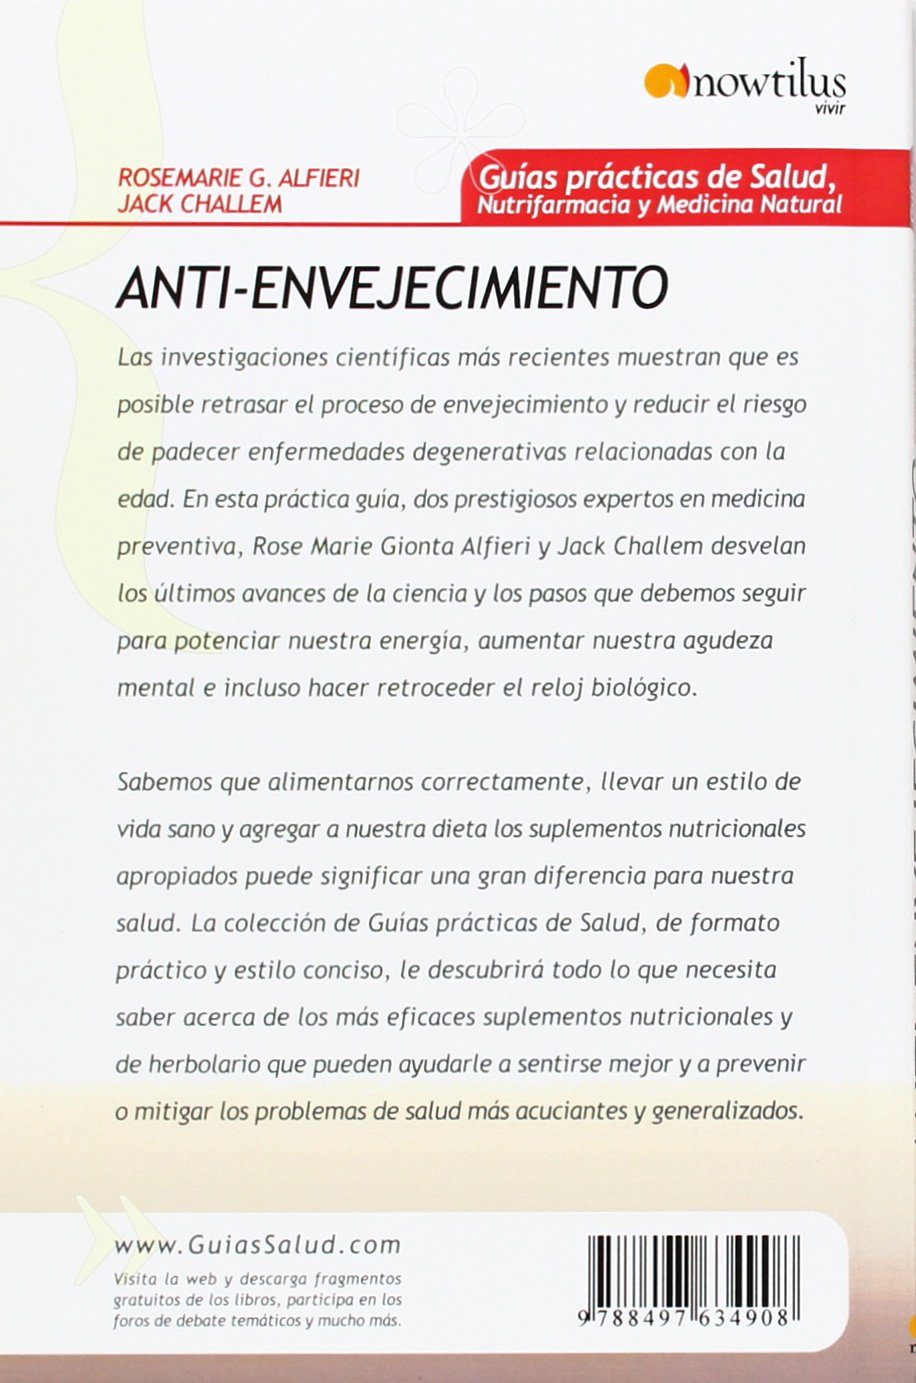 Anti-envejecimiento (Spanish Edition): Rose Marie Gionta Alfieri, Jack Challem: 9788497634908: Amazon.com: Books